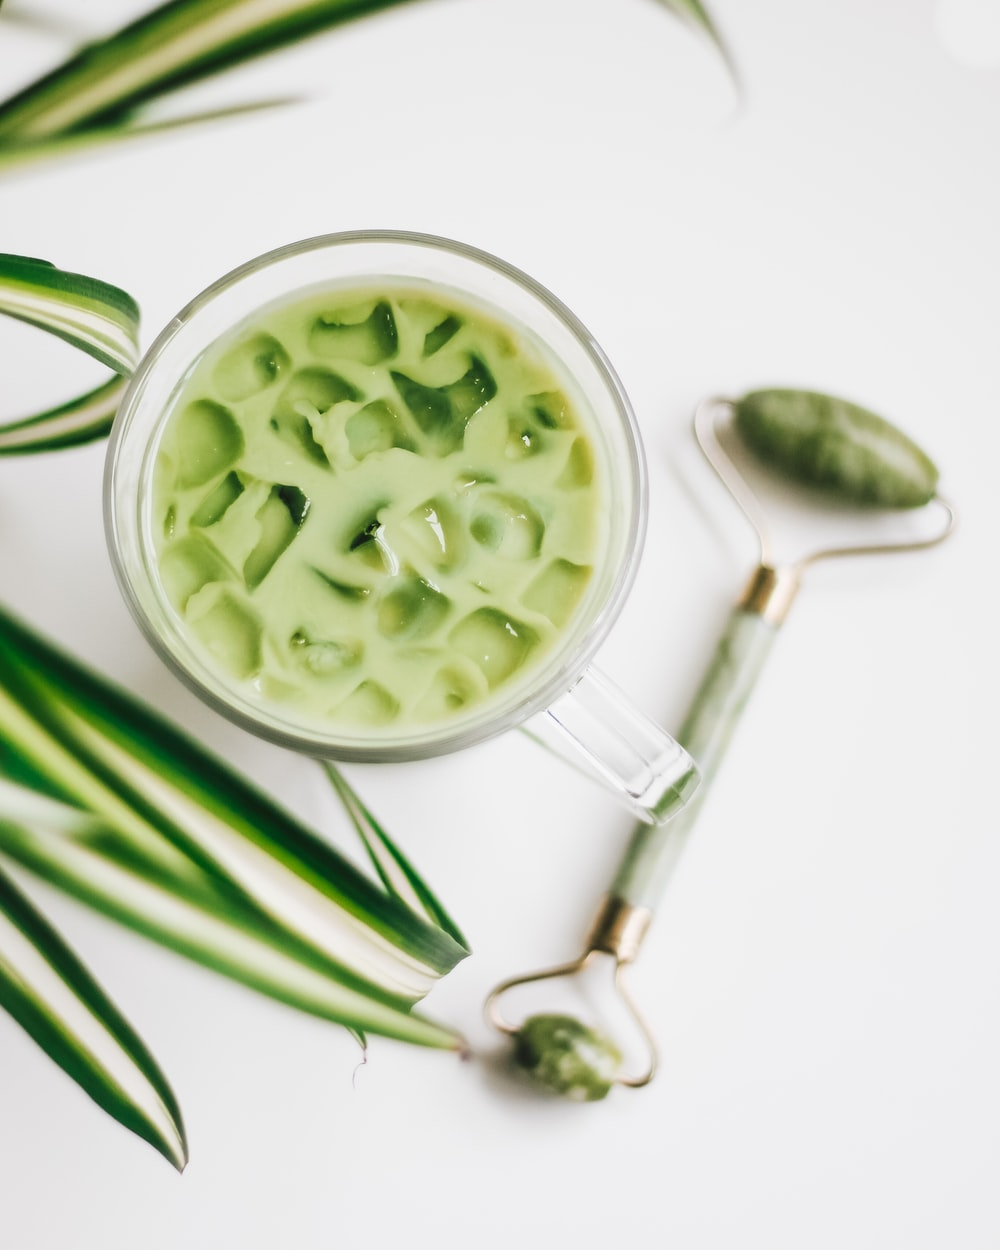 green and white ceramic bowl with green liquid